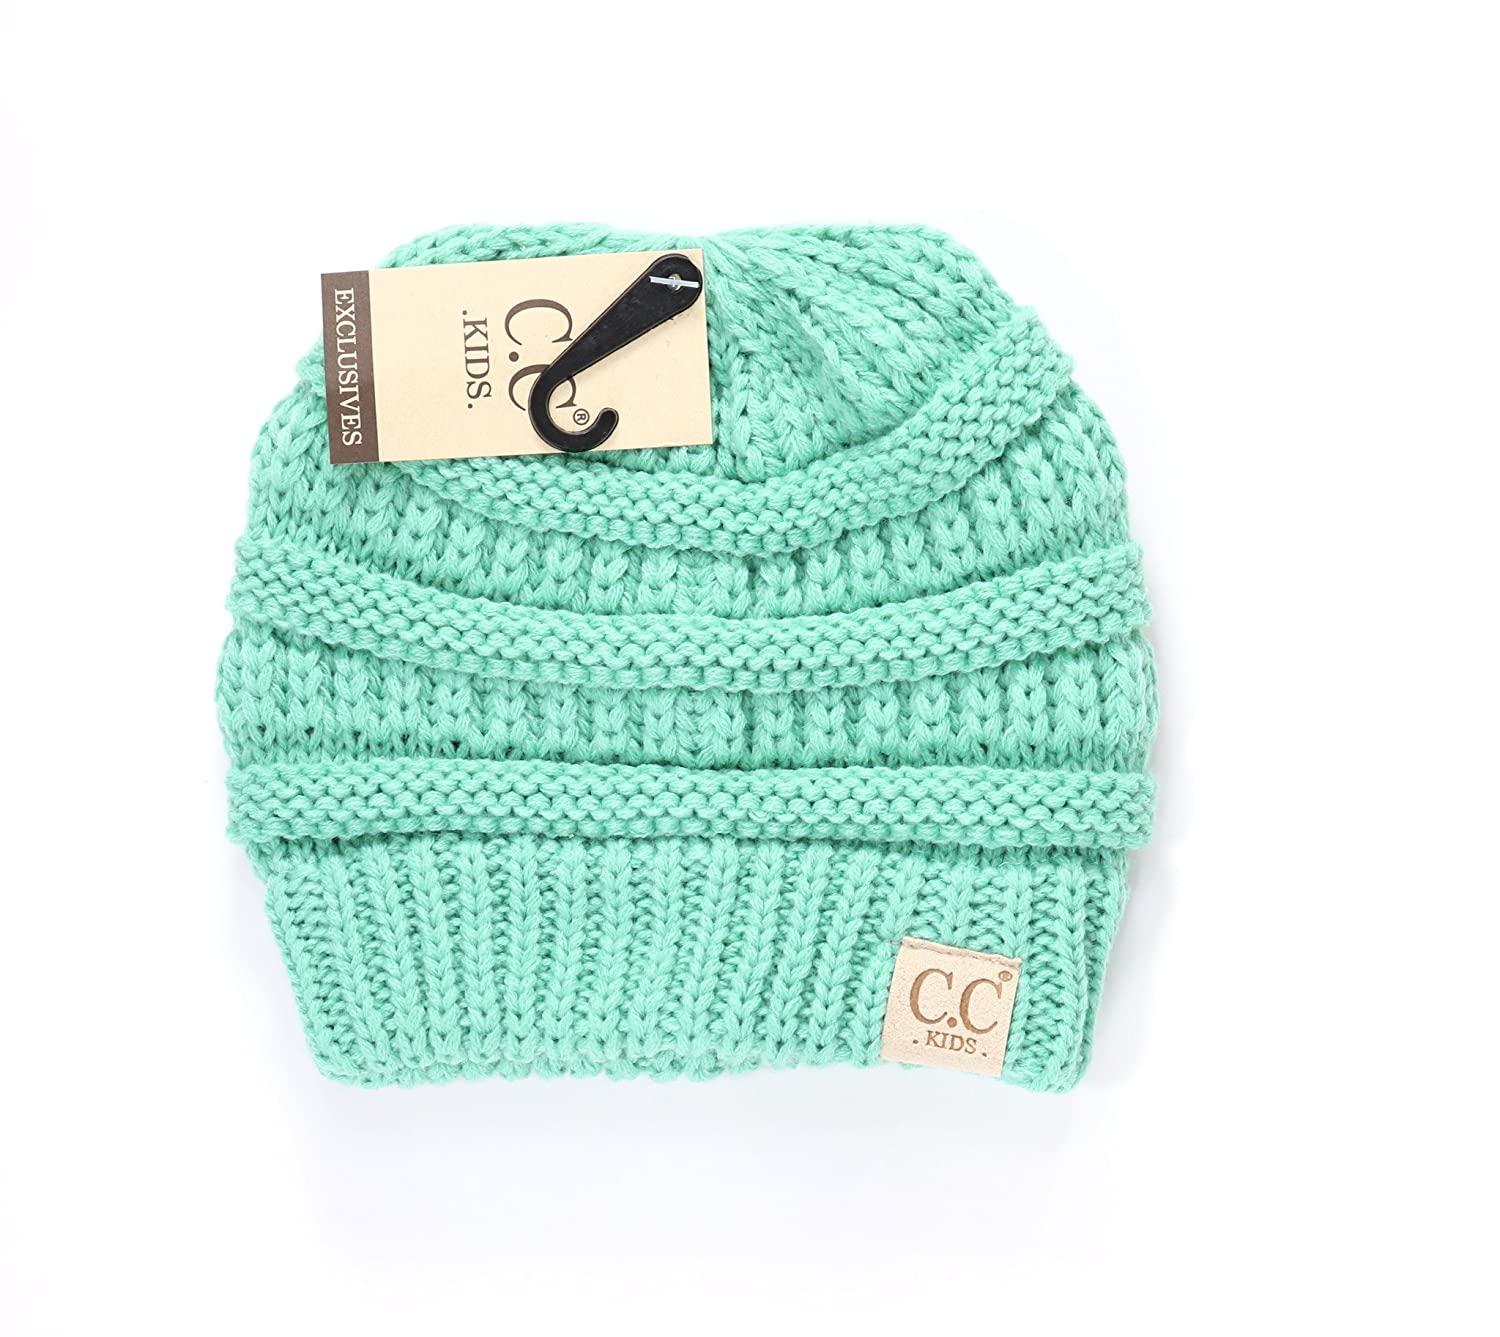 bd1e9f53859 Women s Kids Solid CC Beanie One Size Beige at Amazon Women s Clothing  store